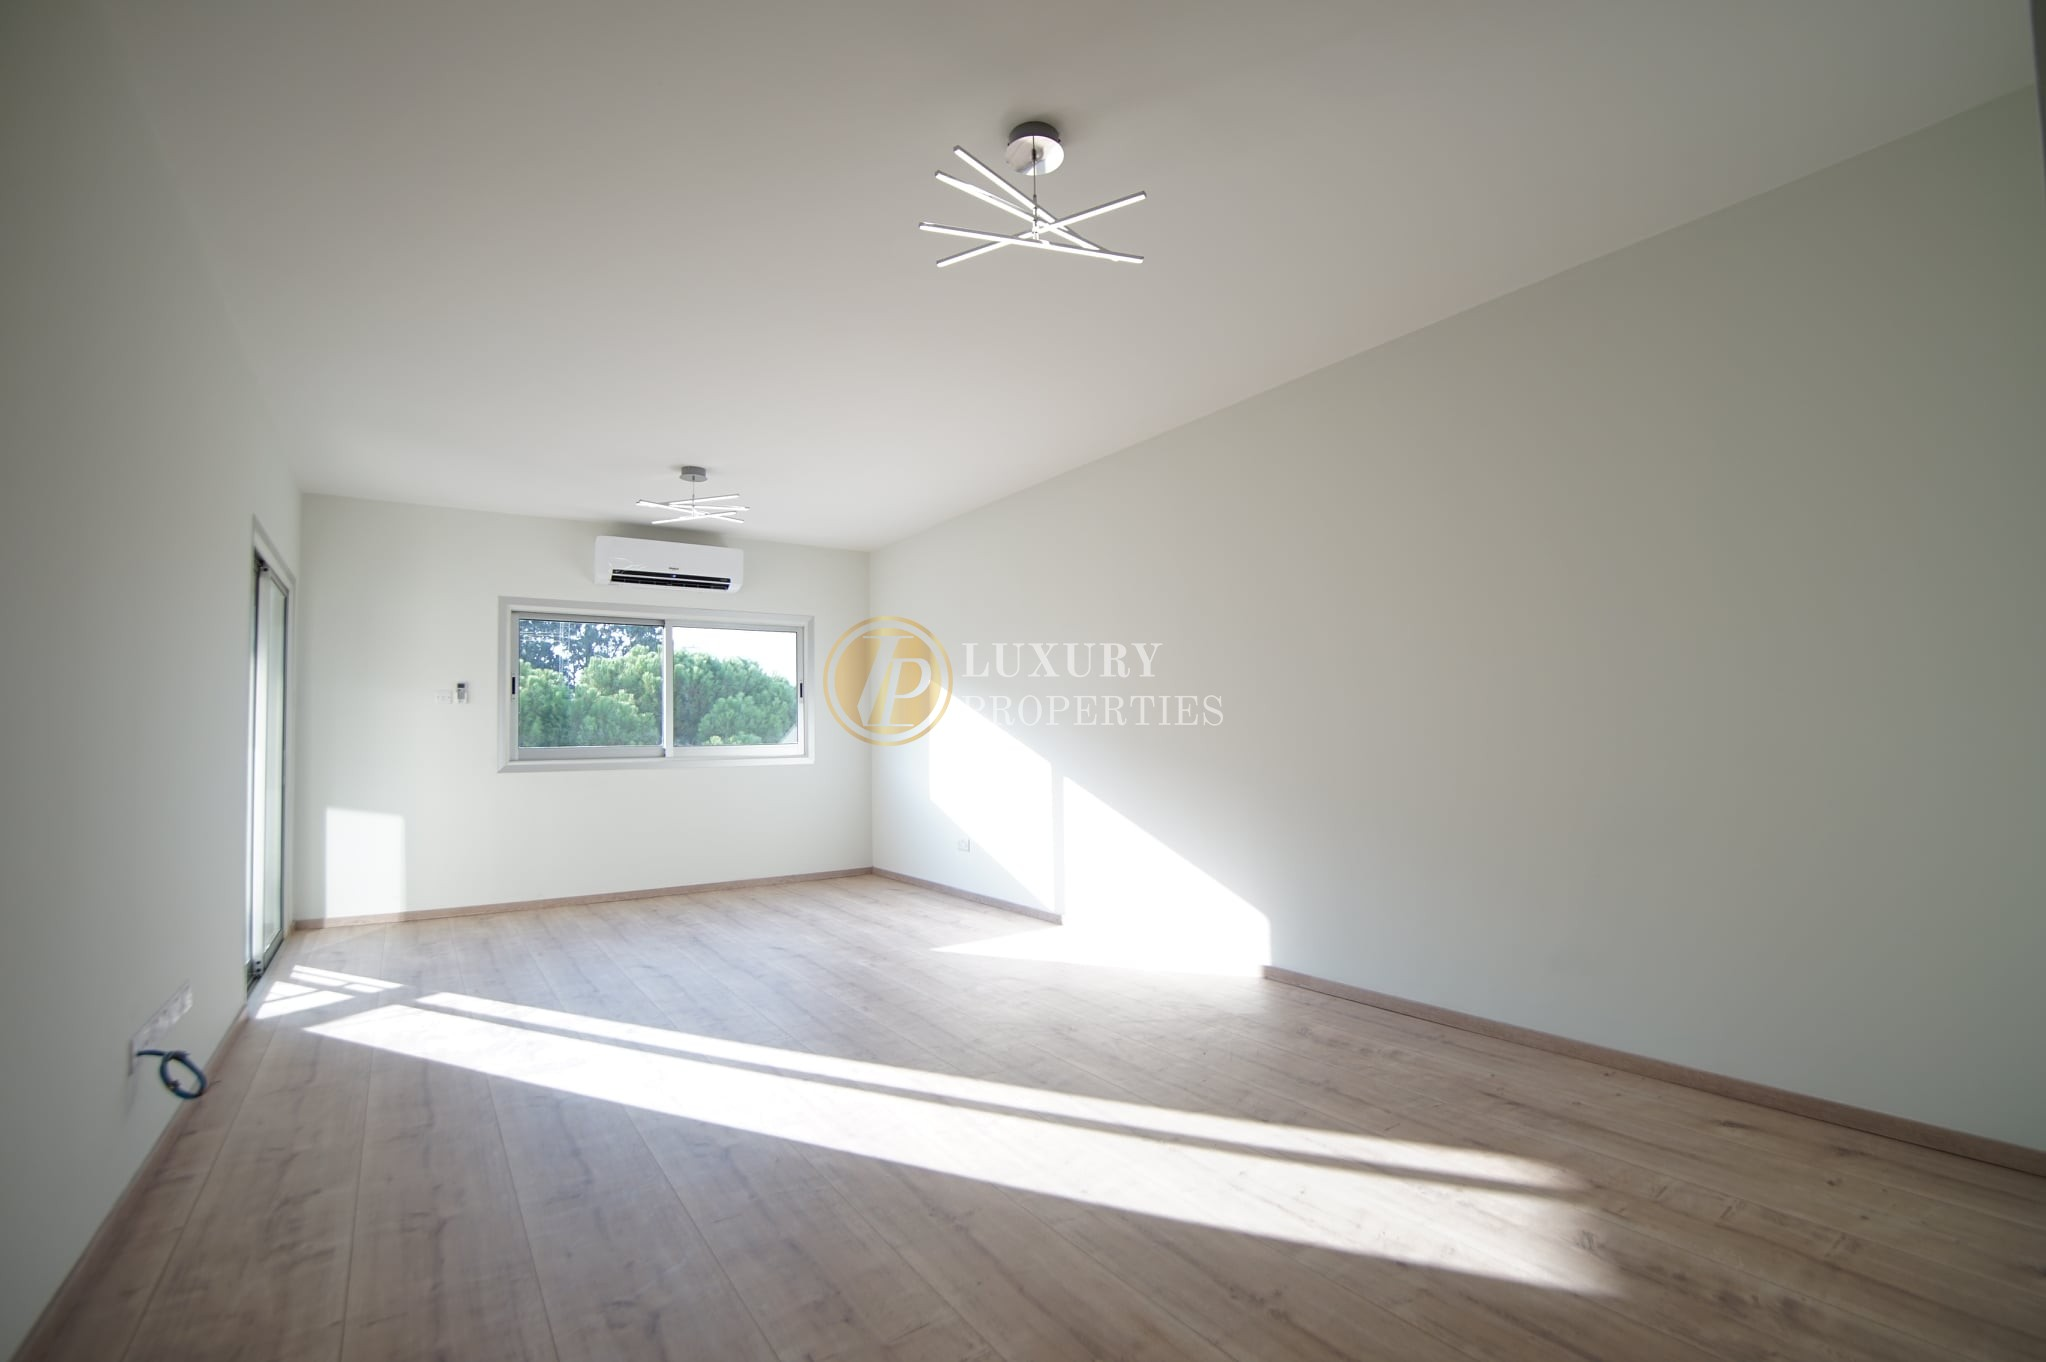 3 bedroom apartment in agioi omologites modern renovated nicosia center